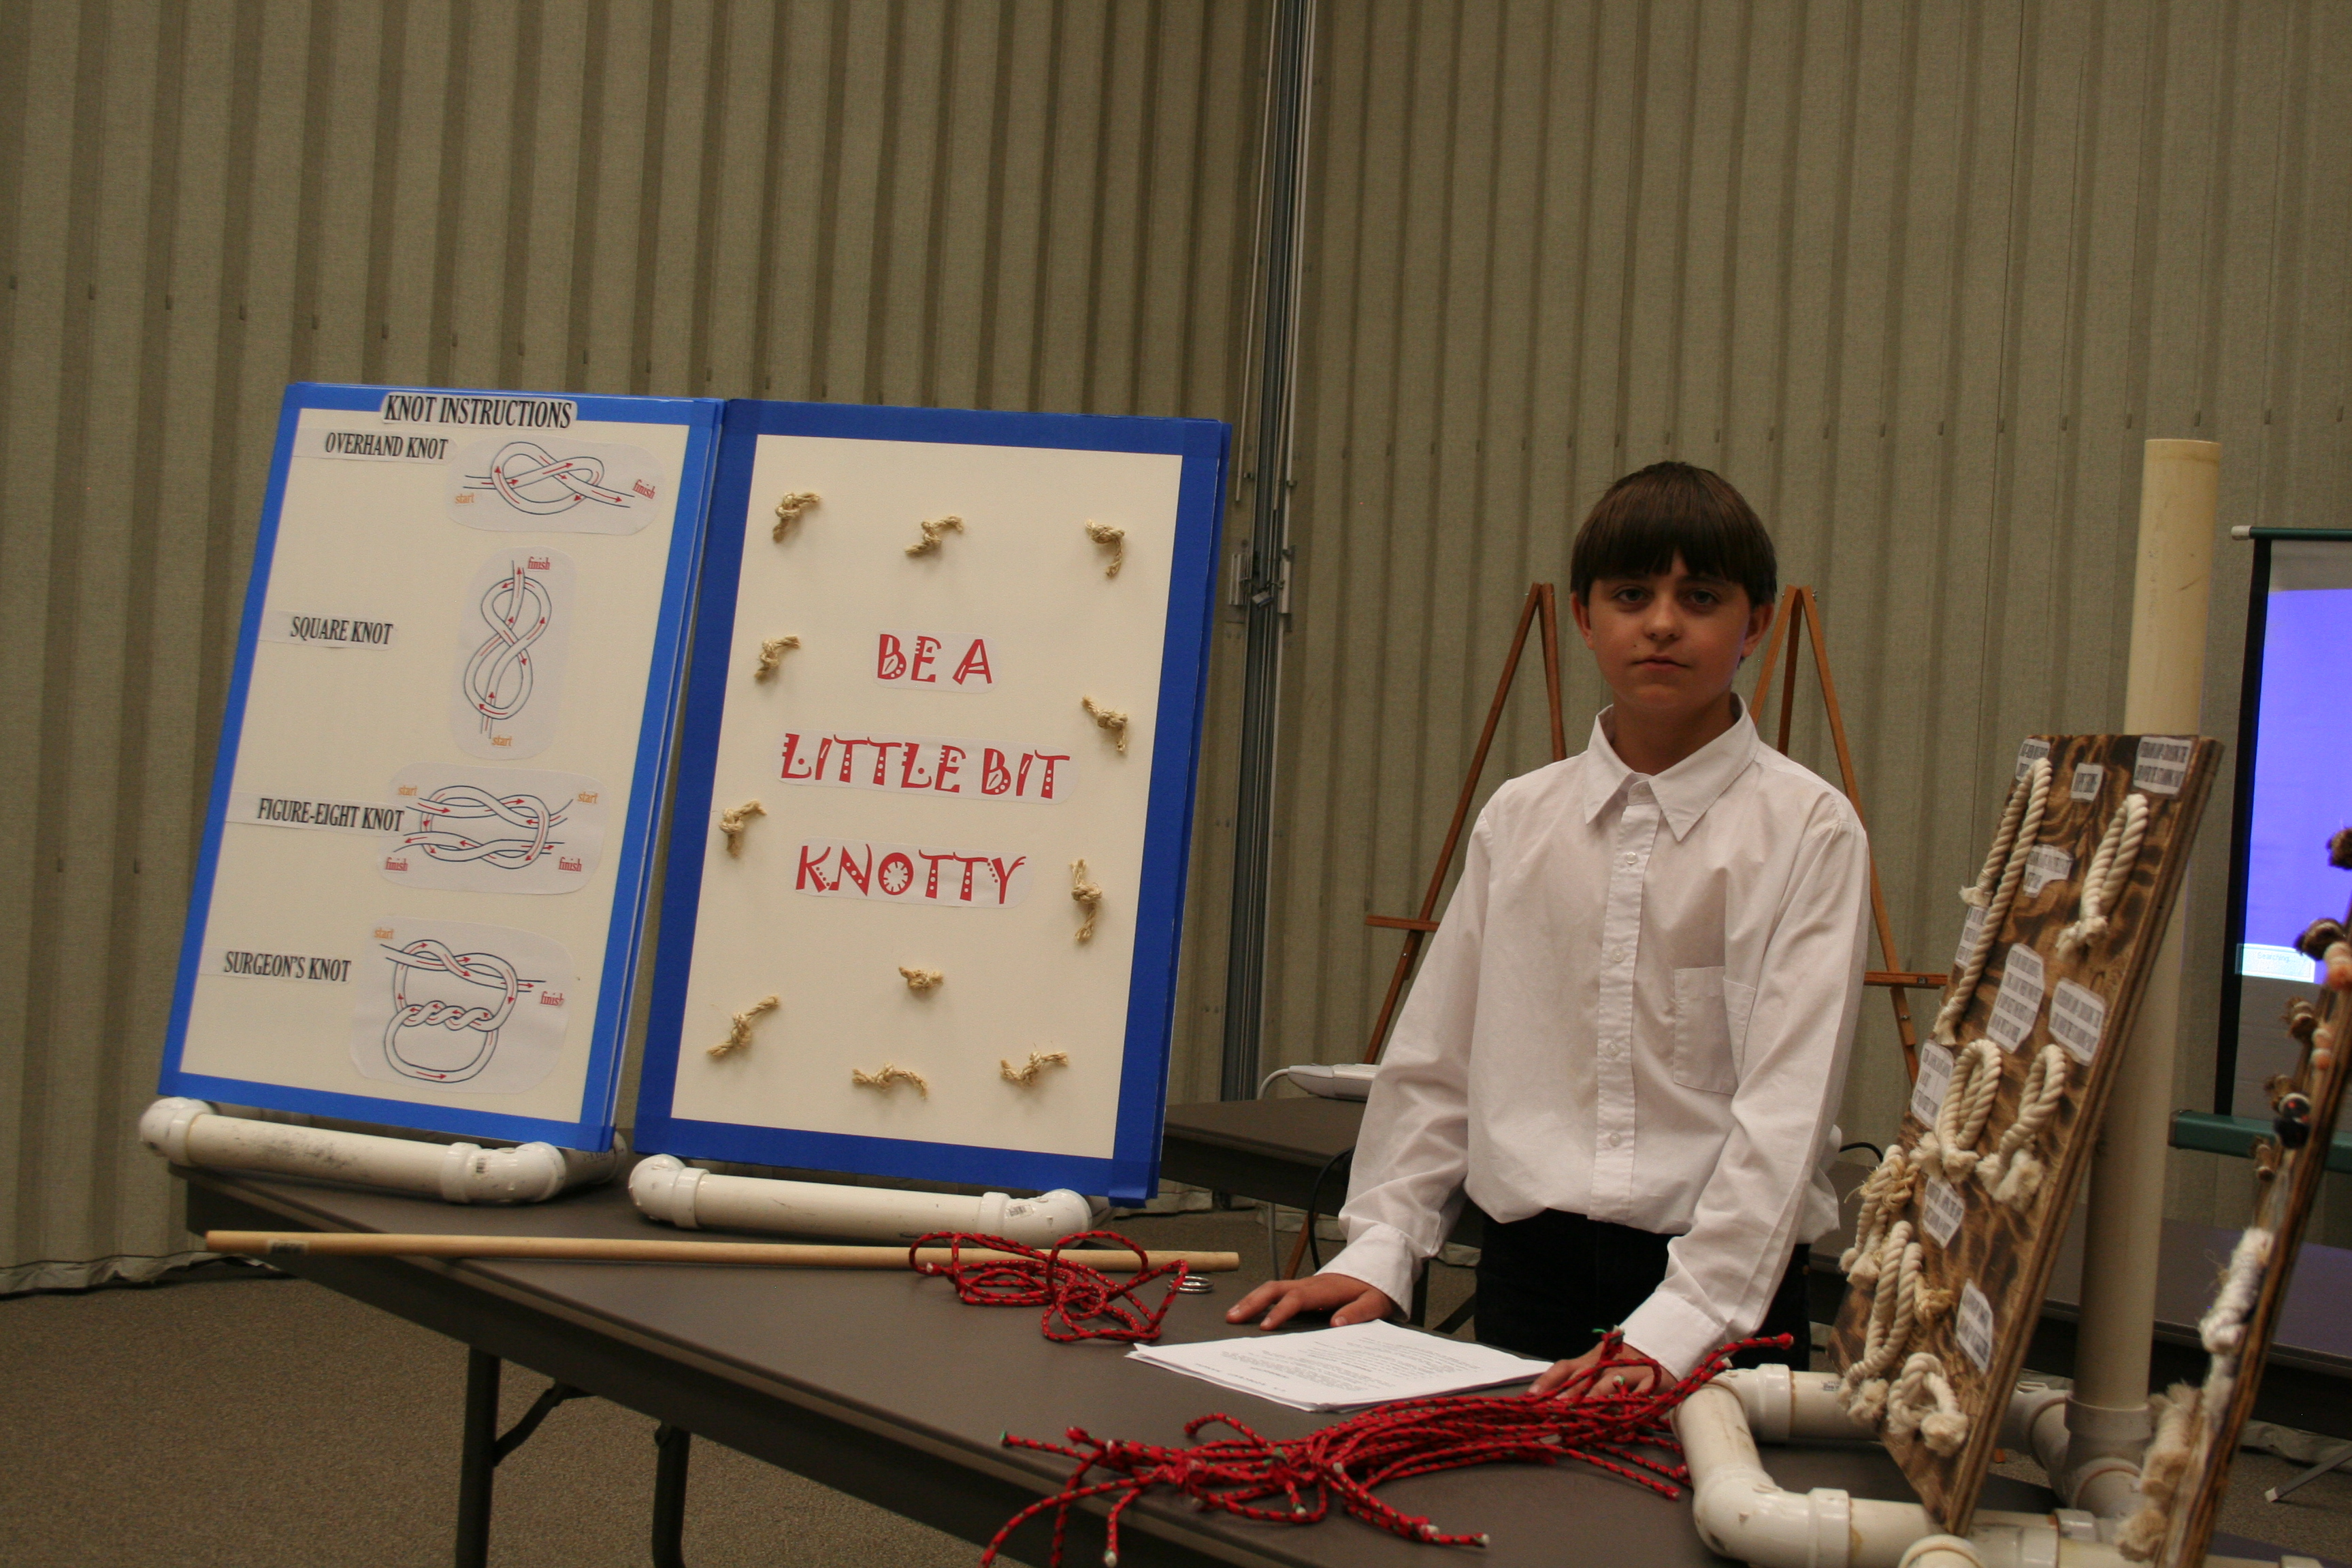 Young boy giving a demonstration on tieing knots.